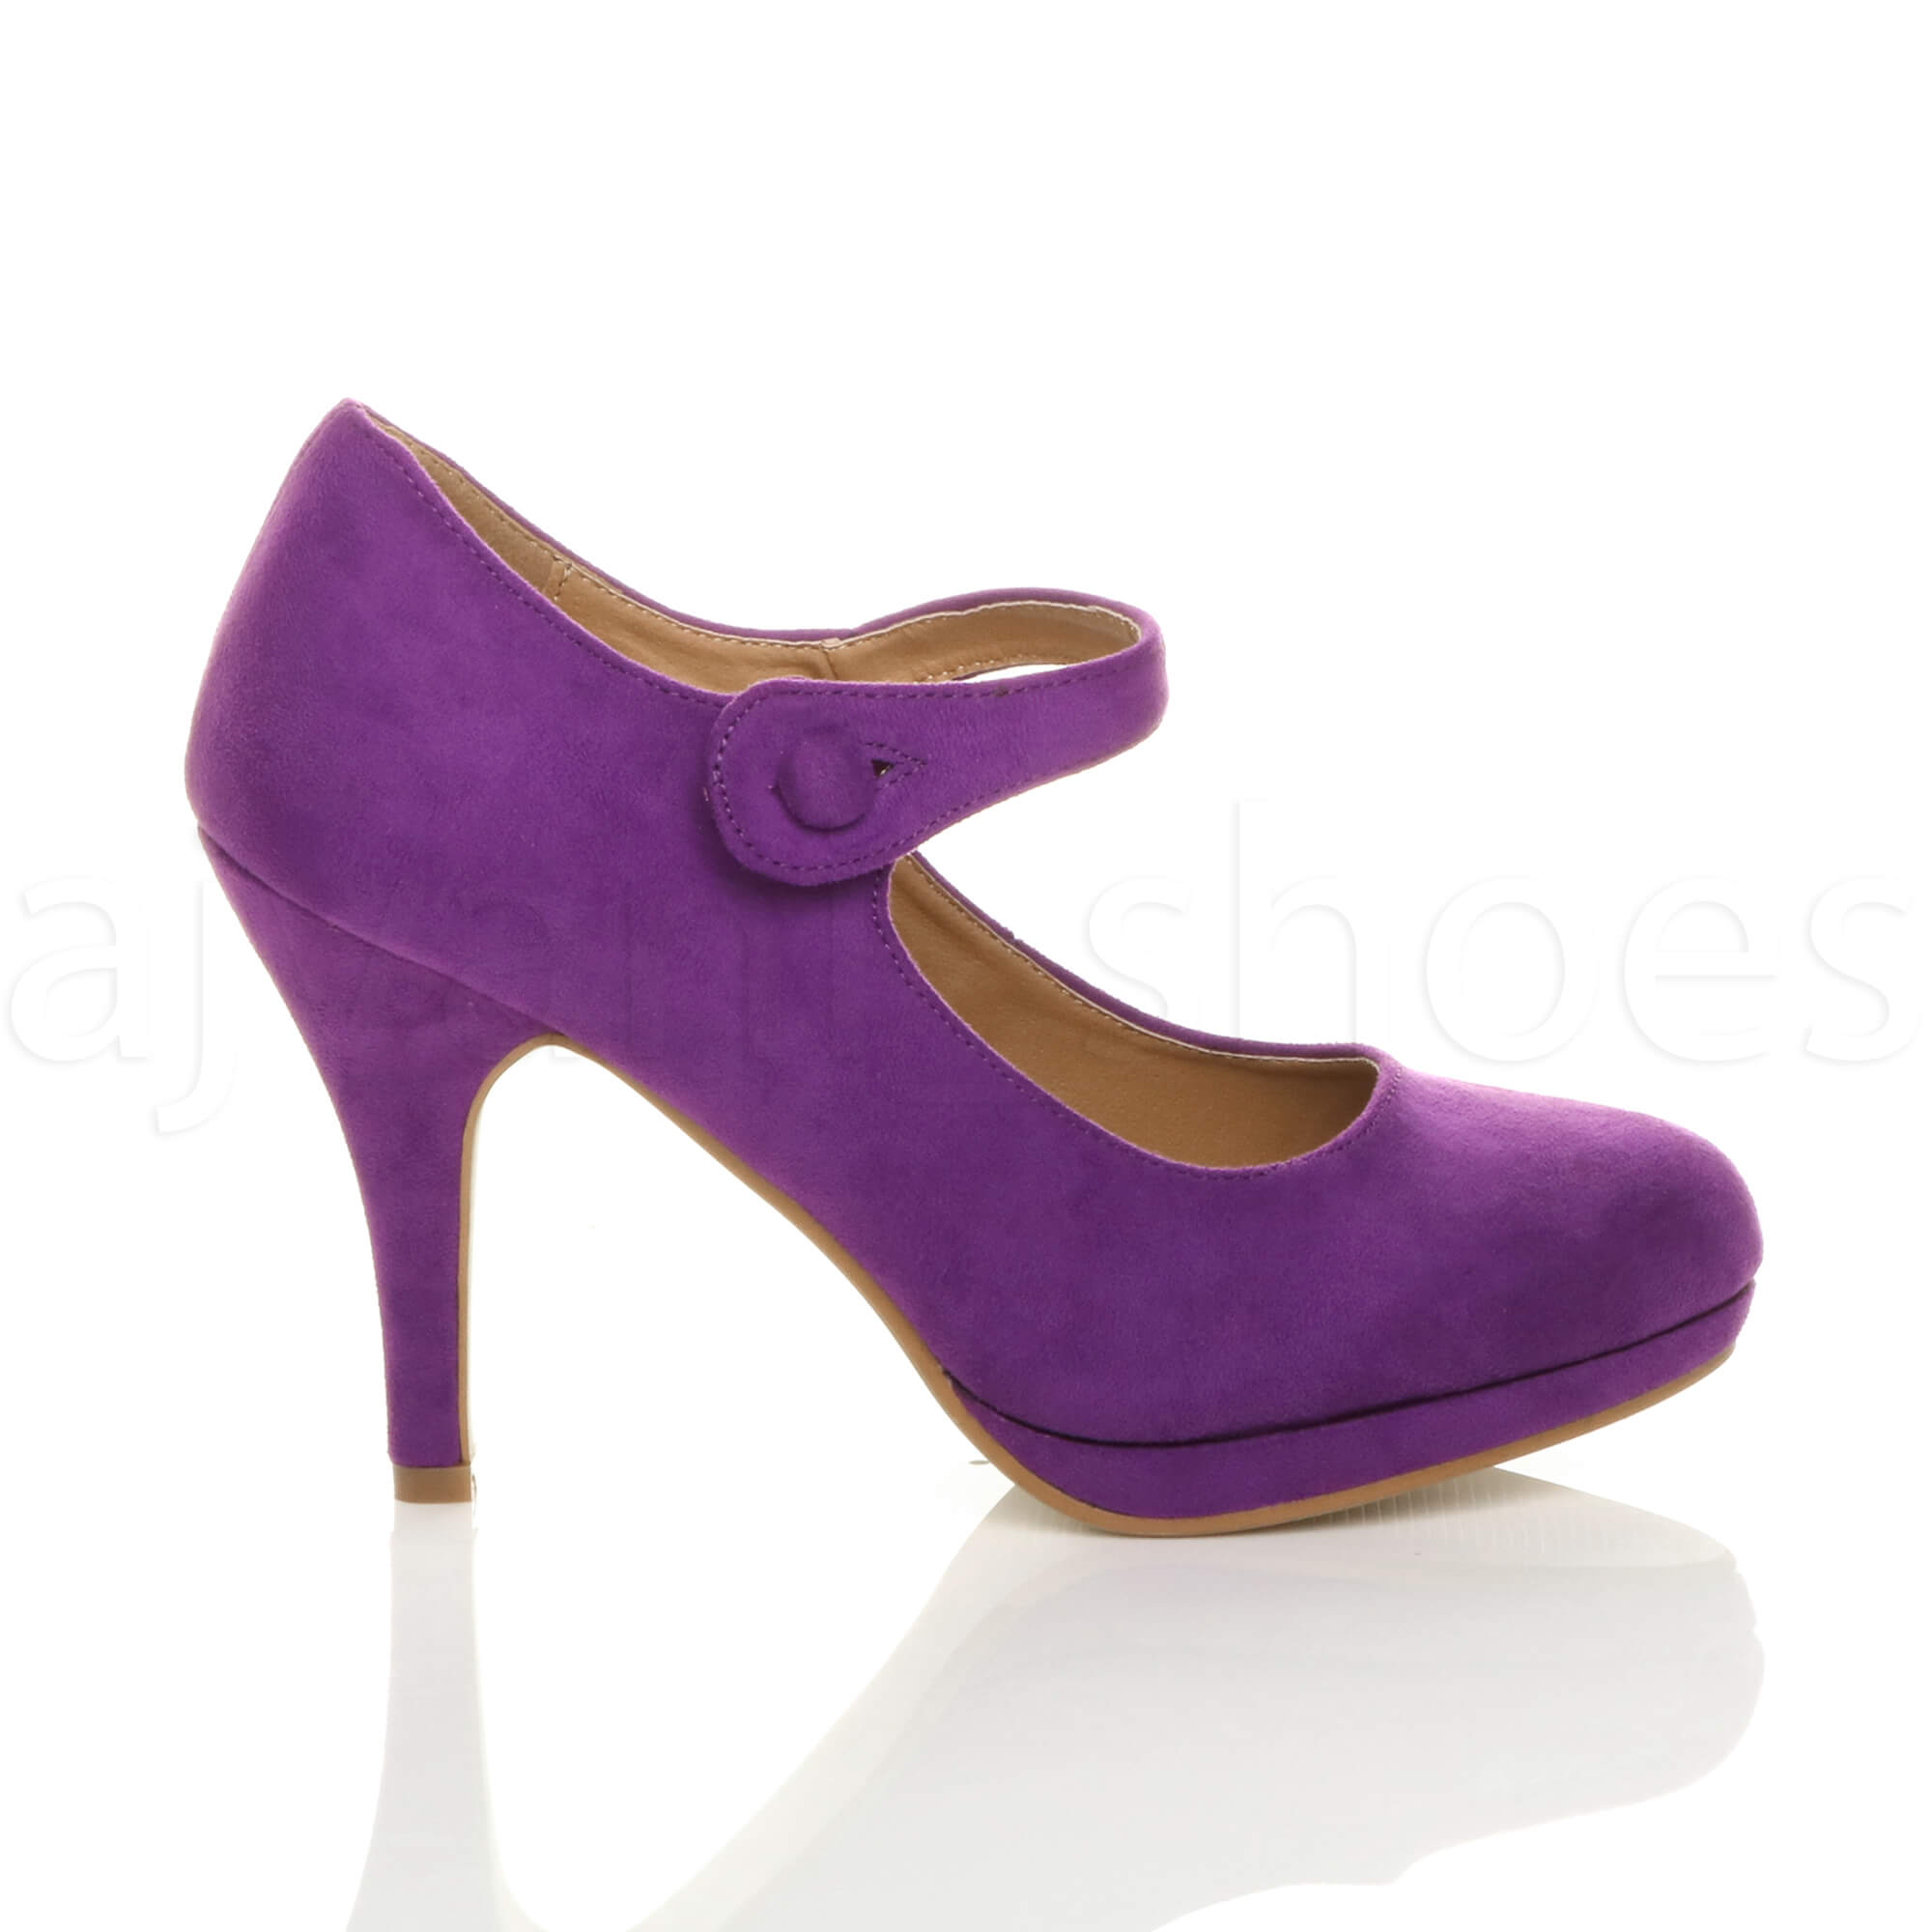 WOMENS-LADIES-MID-HIGH-HEEL-MARY-JANE-EVENING-WORK-PLATFORM-COURT-SHOES-SIZE